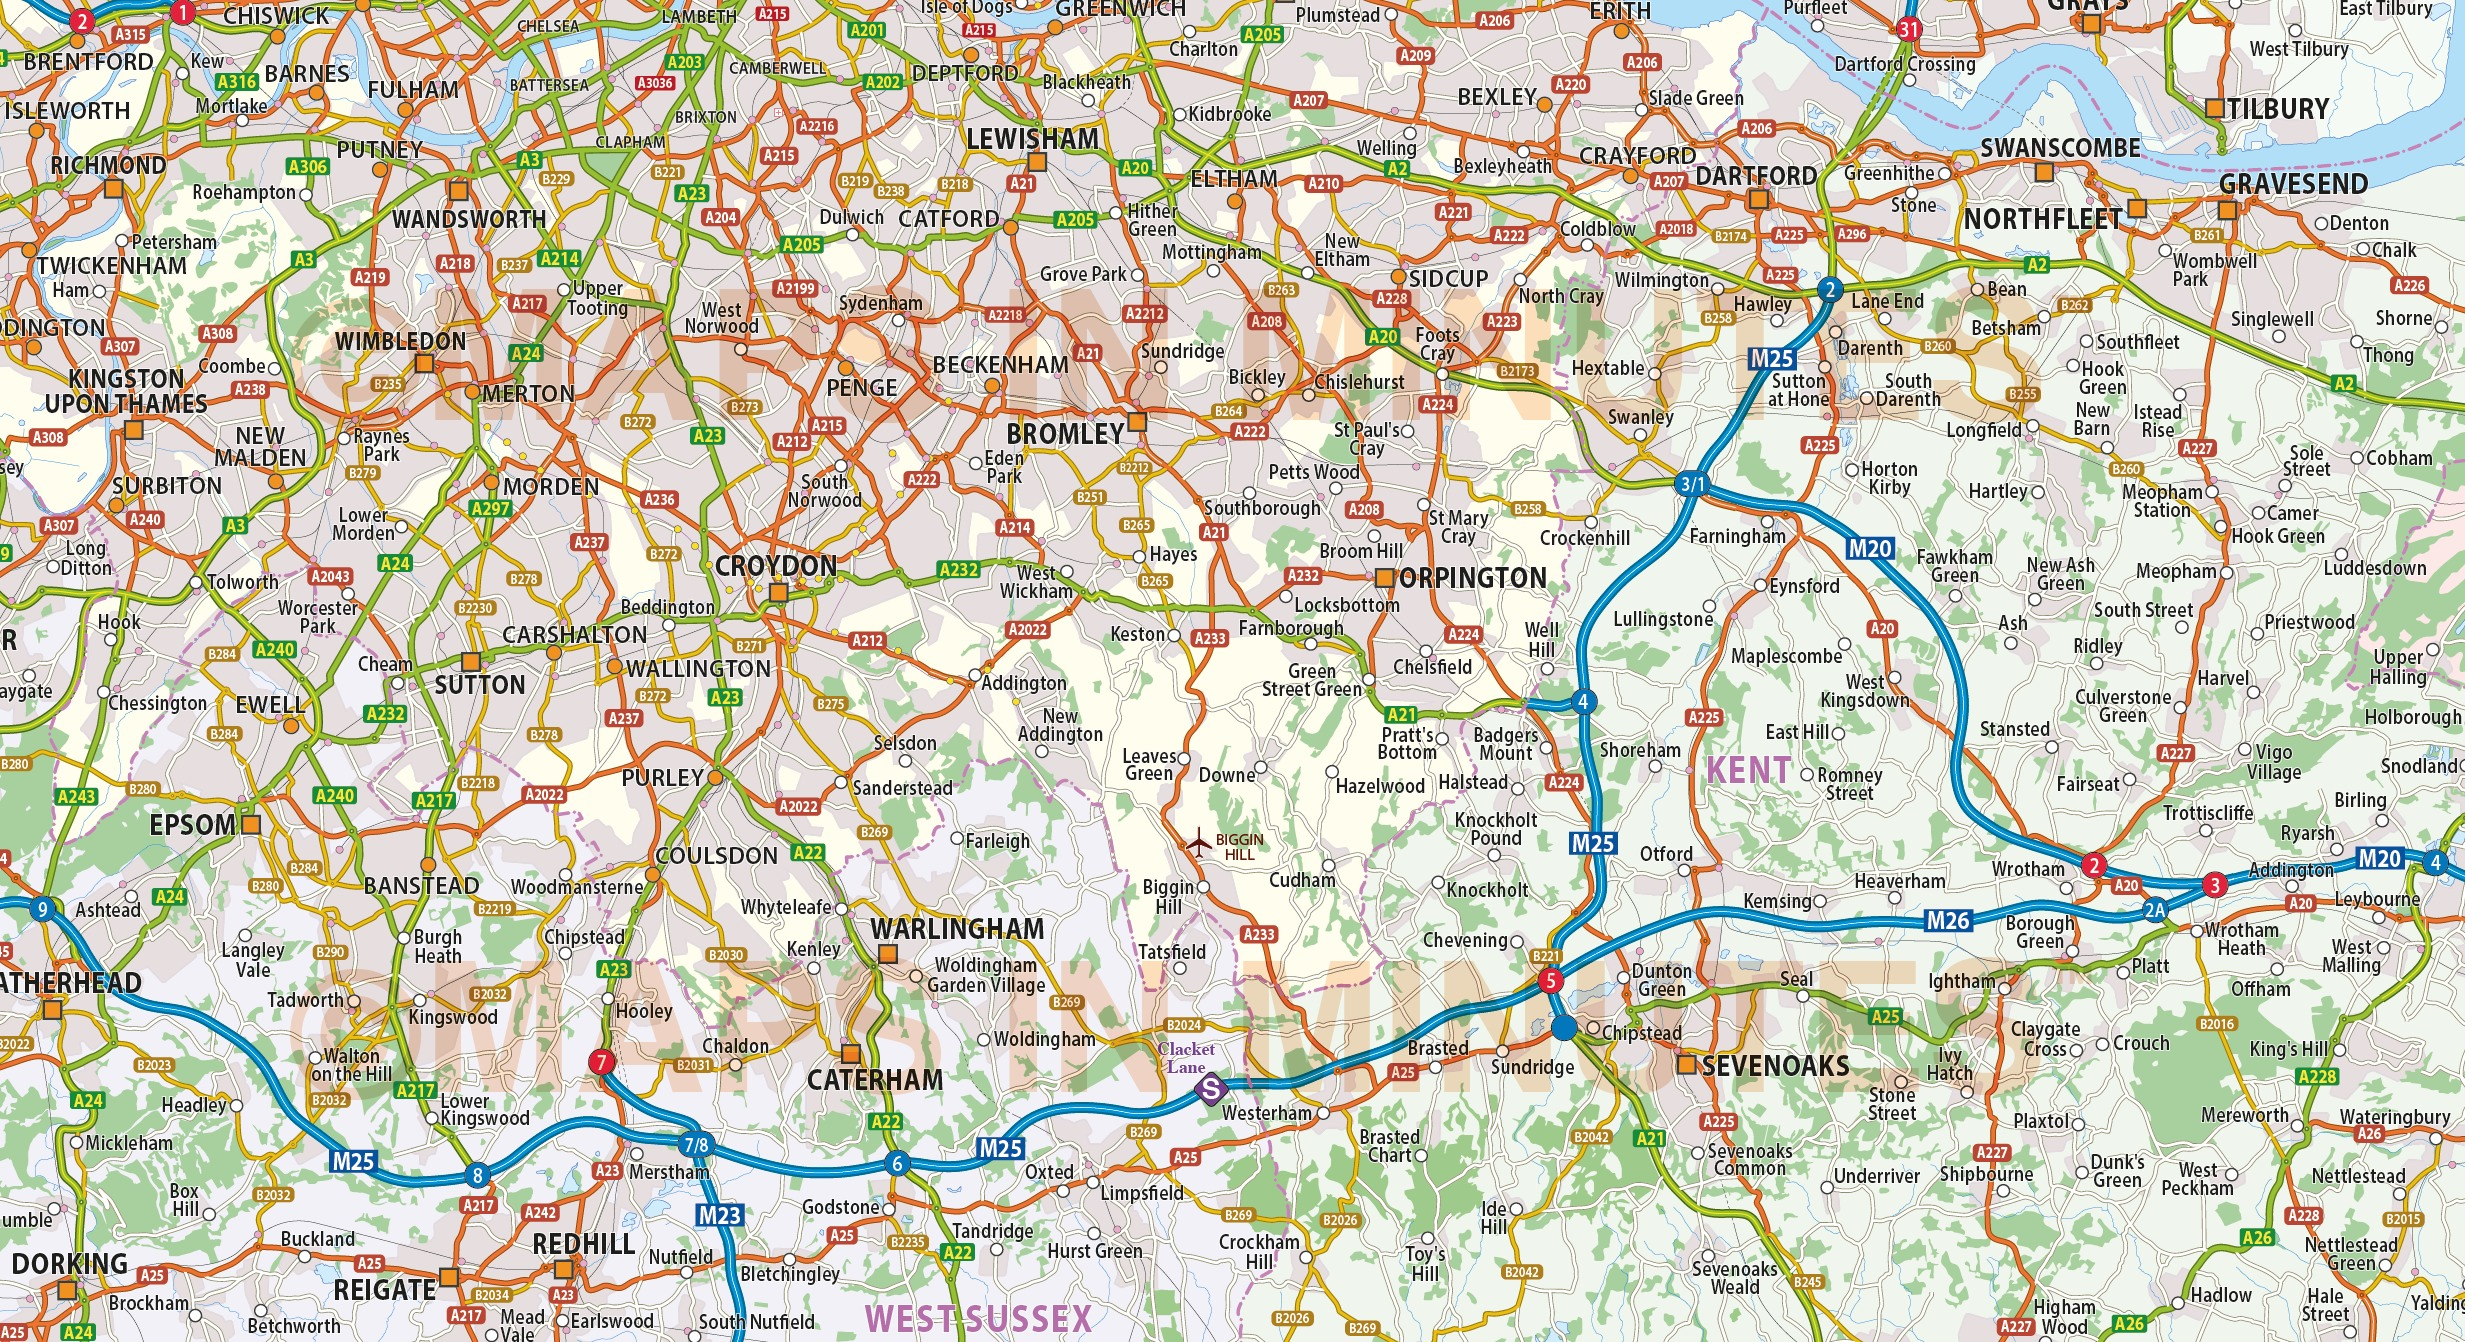 vector greater london m25 county road map 250k scale in ai illustrator cs